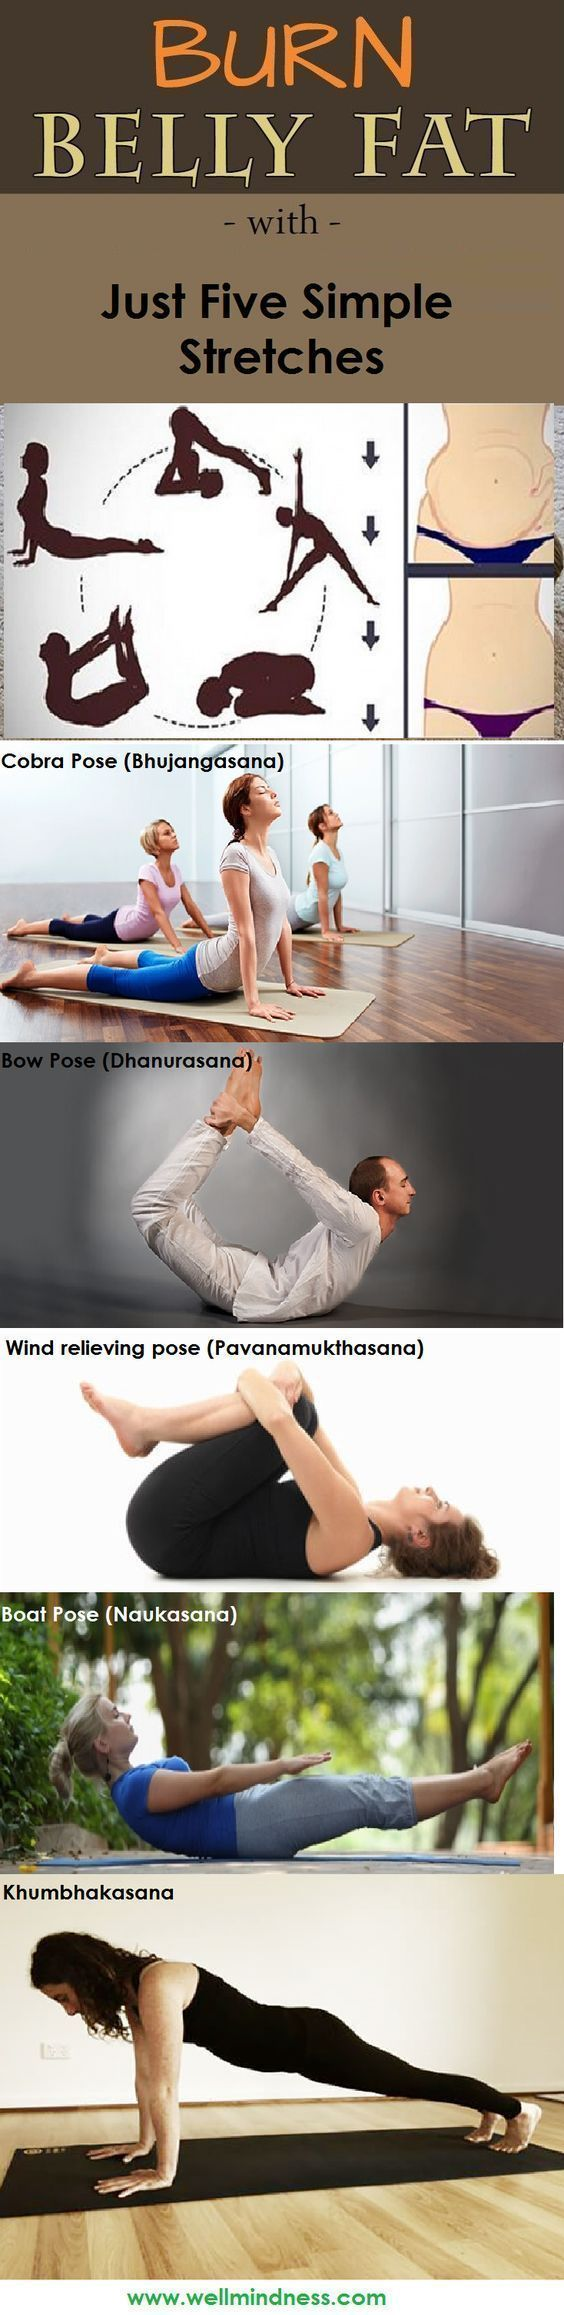 how to lose fat fast for men, fastest diet to lose weight, best cardio for weight loss - Nobody likes to have a big belly, but it is very easy to get, especially if you don't have time or money to exercise in a gym. But with these 5 yoga asanas, which you can practice daily, you will reduce belly fat really fast. #lose5poundsinaweekeasy #tolose5poundsin2weeks